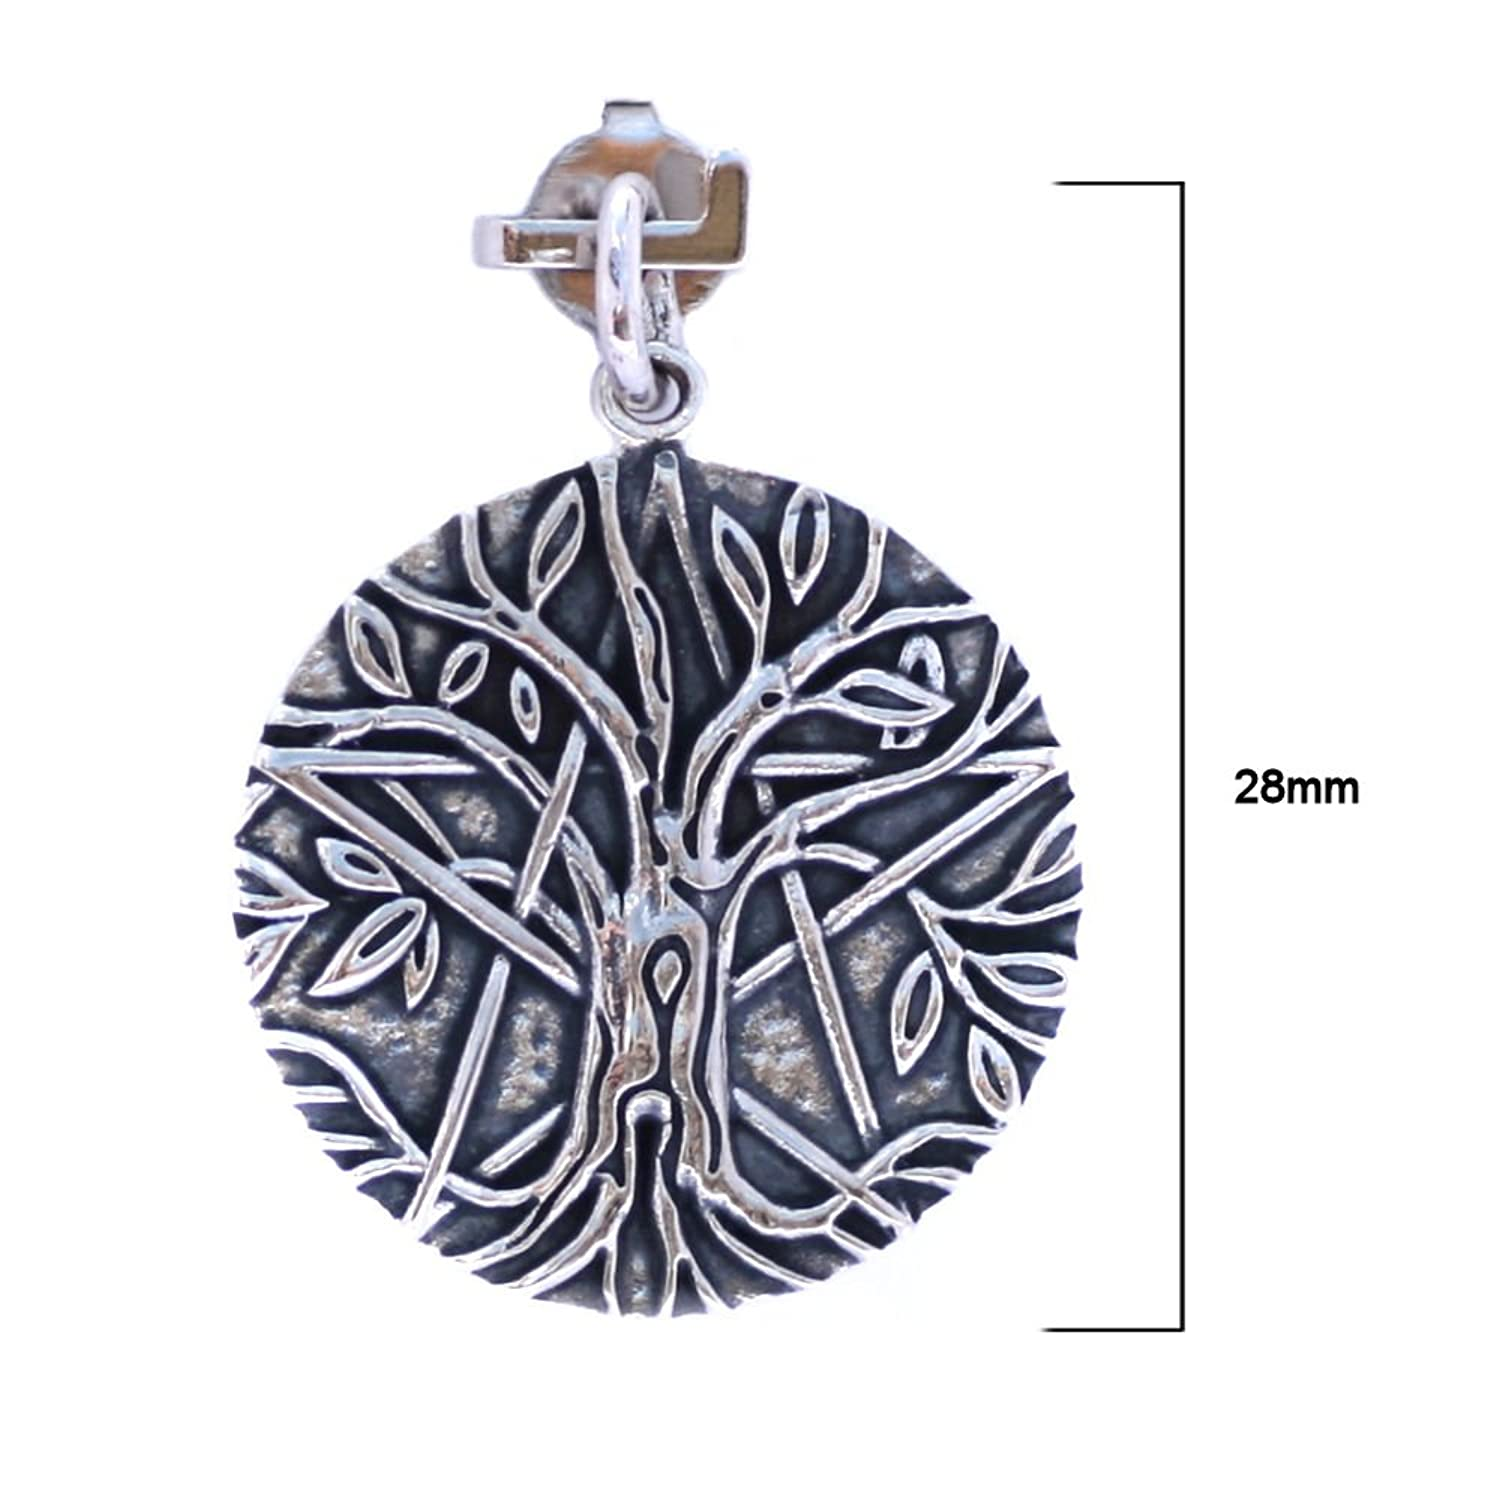 Solid Sterling Silver Pentagram Tree of Life Pendant Pagan (P014) VKOrlguiYj